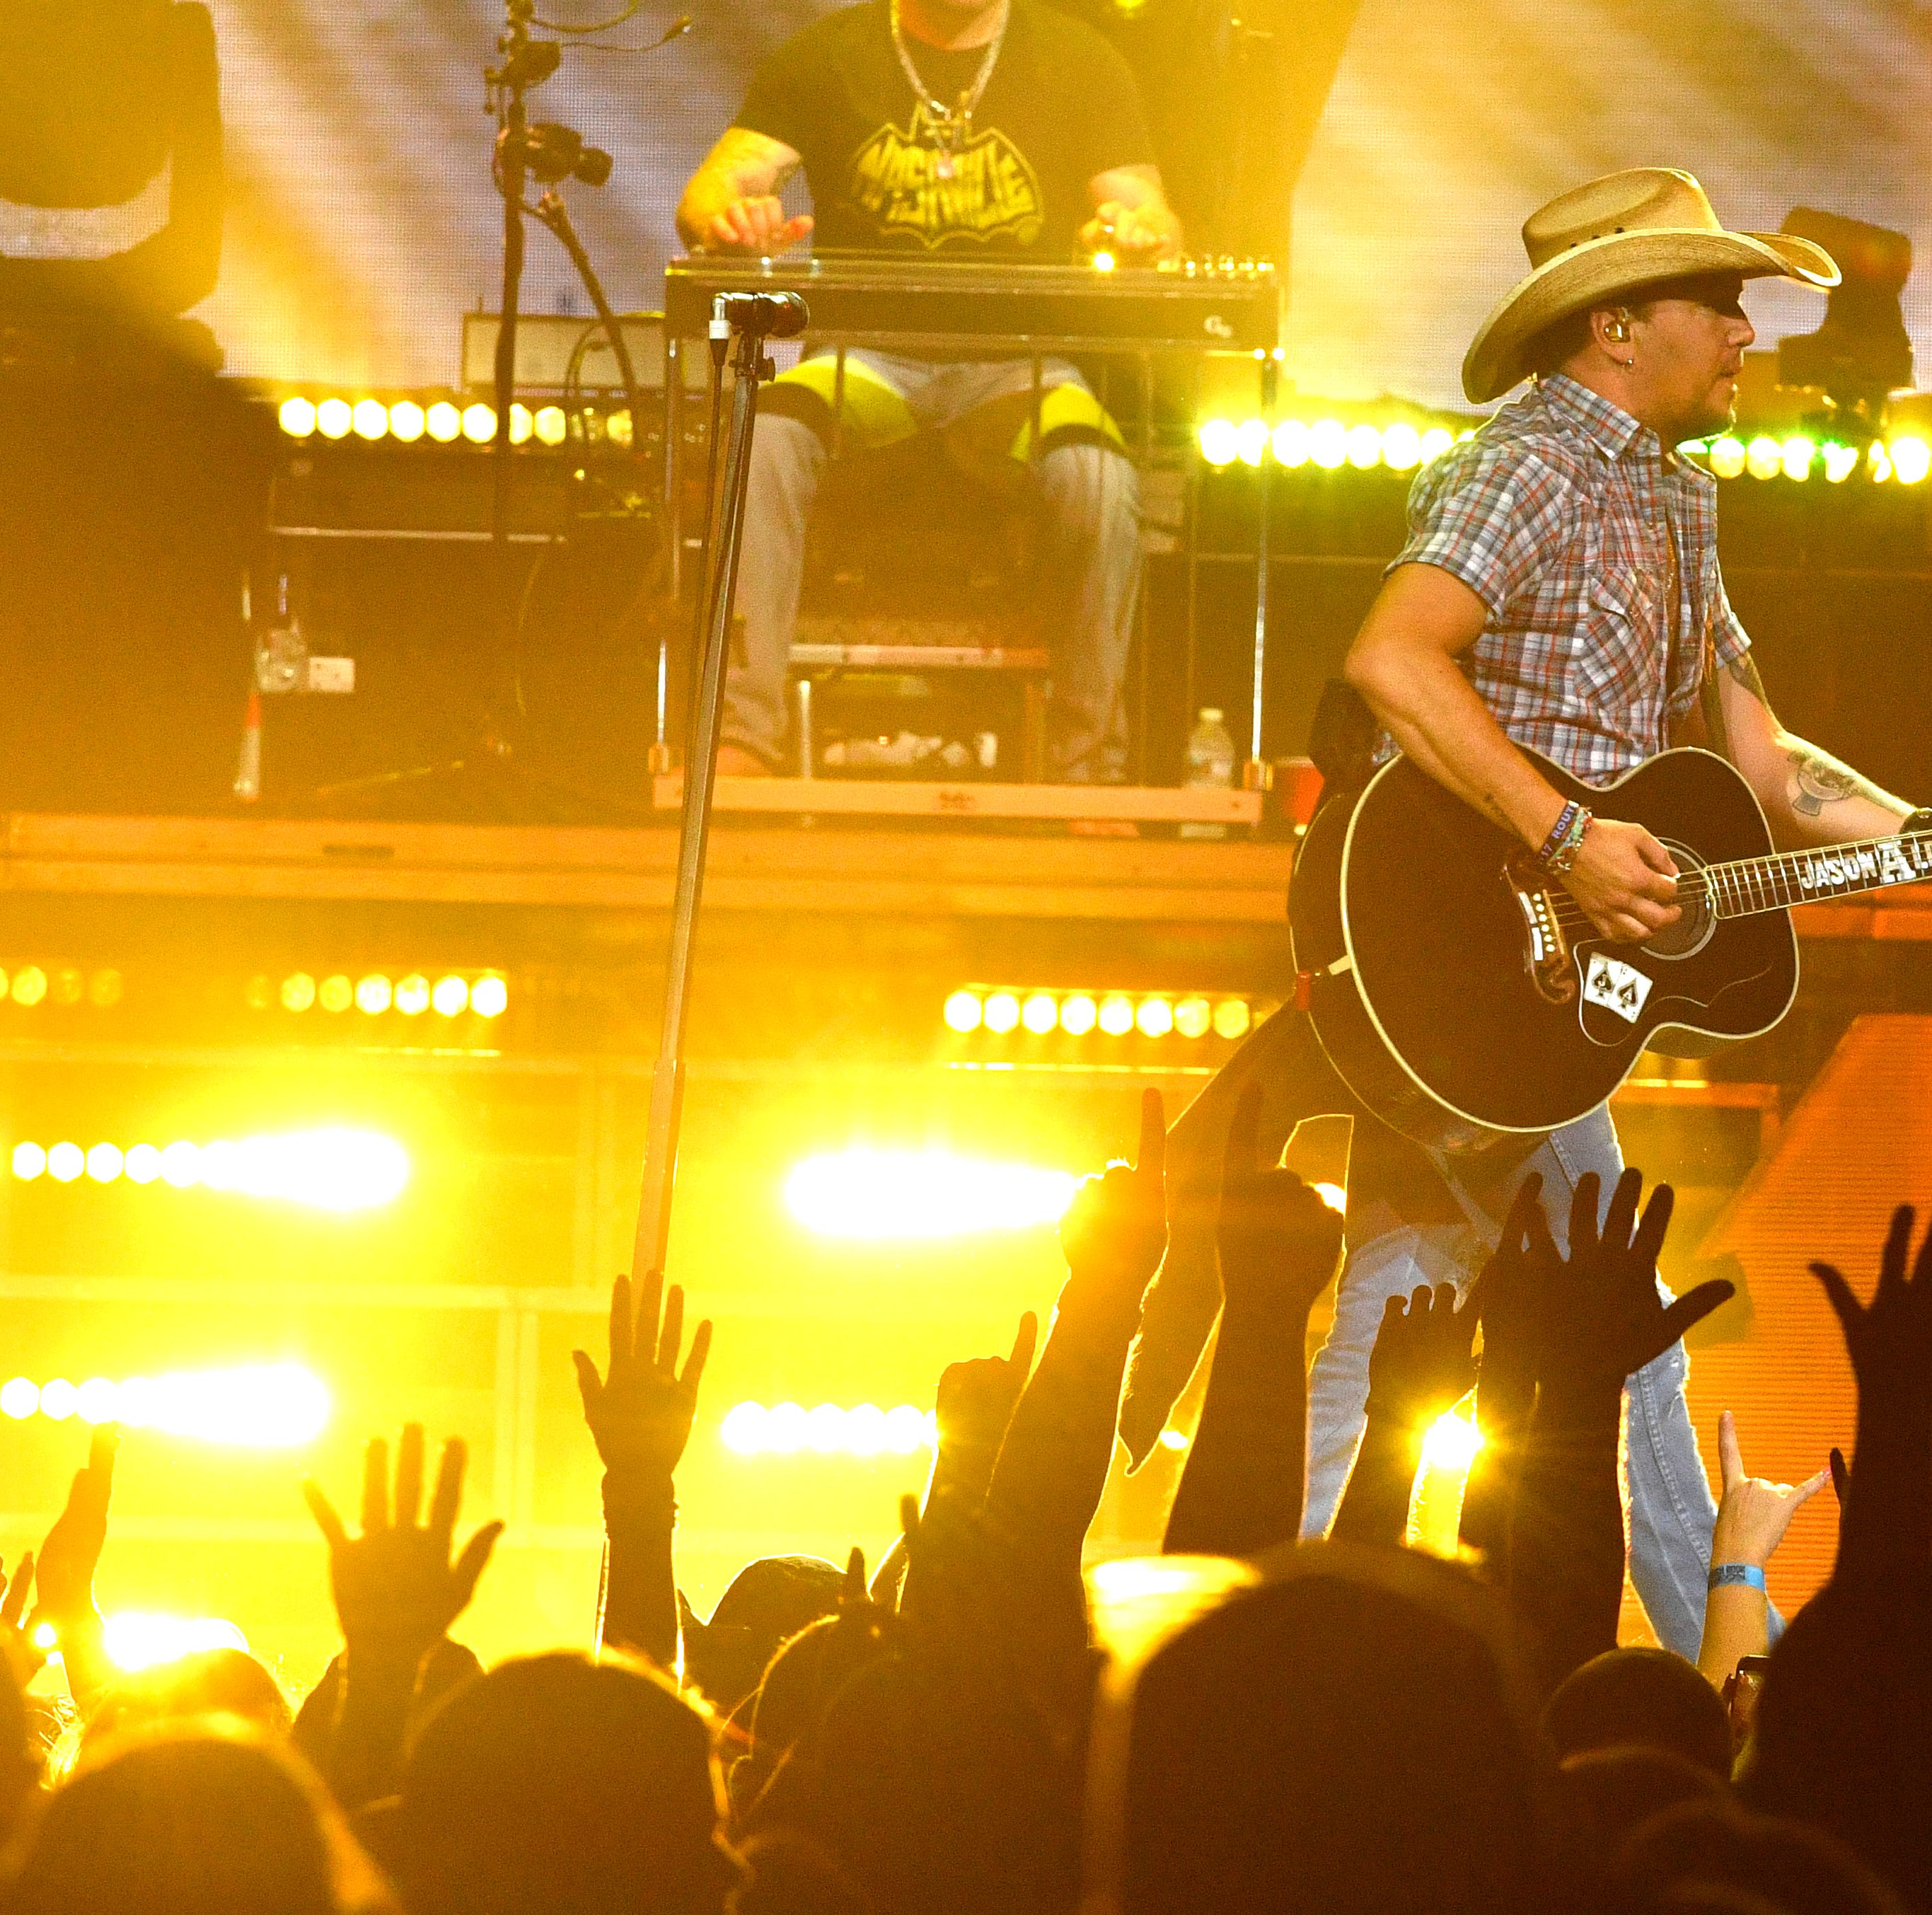 Jason Aldean: 2019 Ride All Night Tour dates announced, 31 concerts across U.S.